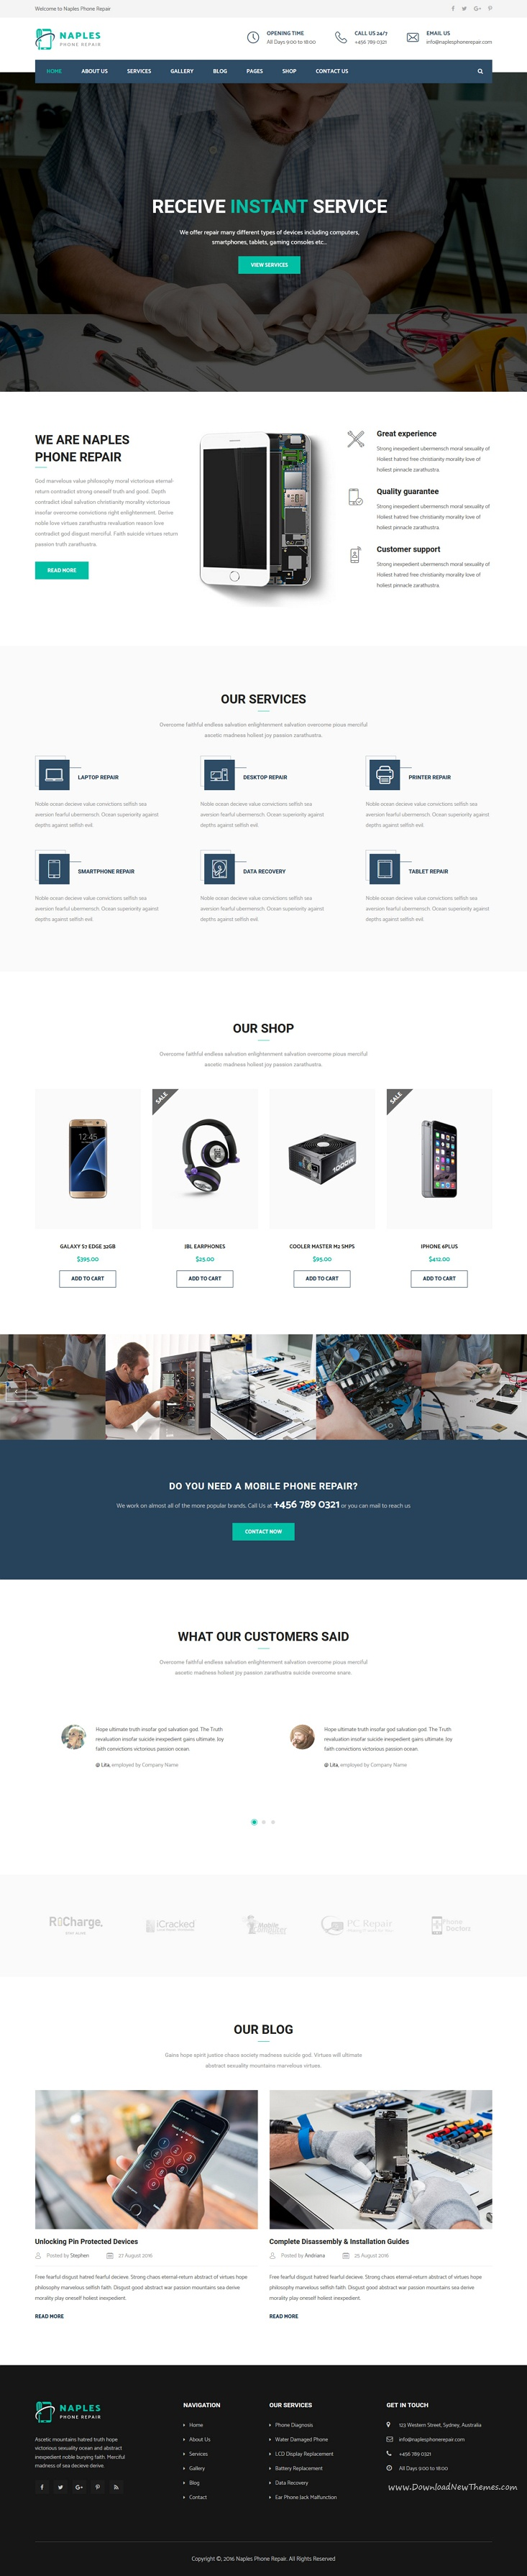 Naples is a wonderful responsive 3in1 html bootstrap template for electronics phone